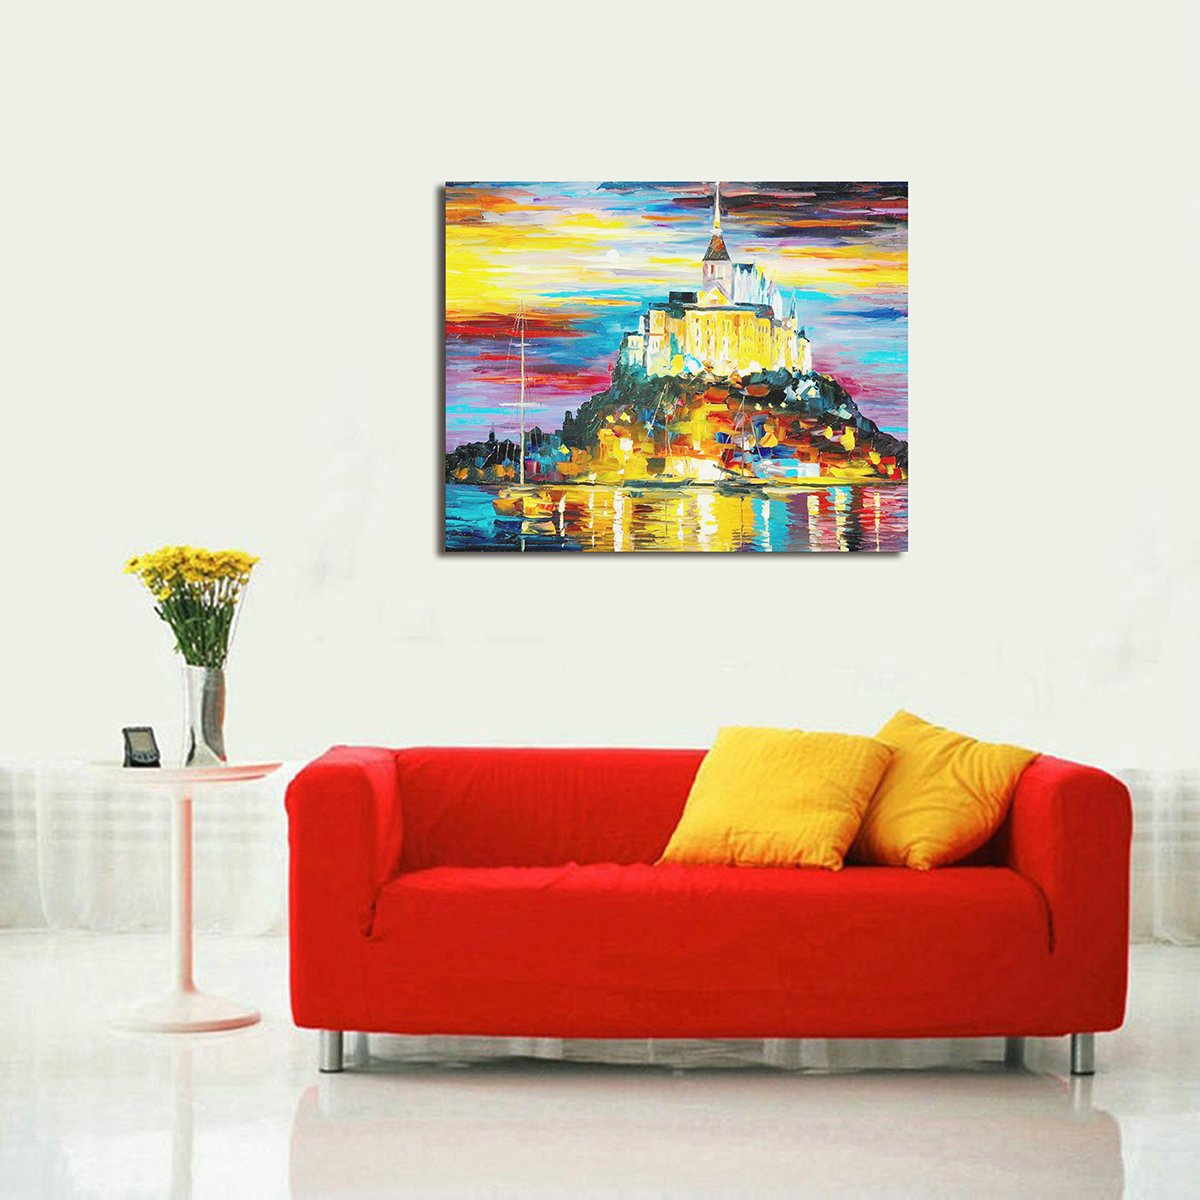 Modern Abstract Oil Paintings Wall Home Decor Artwork Abstract Extra Large-City Hand Painted on Canvas 24X30 Inch (Works Gorgeous 2)